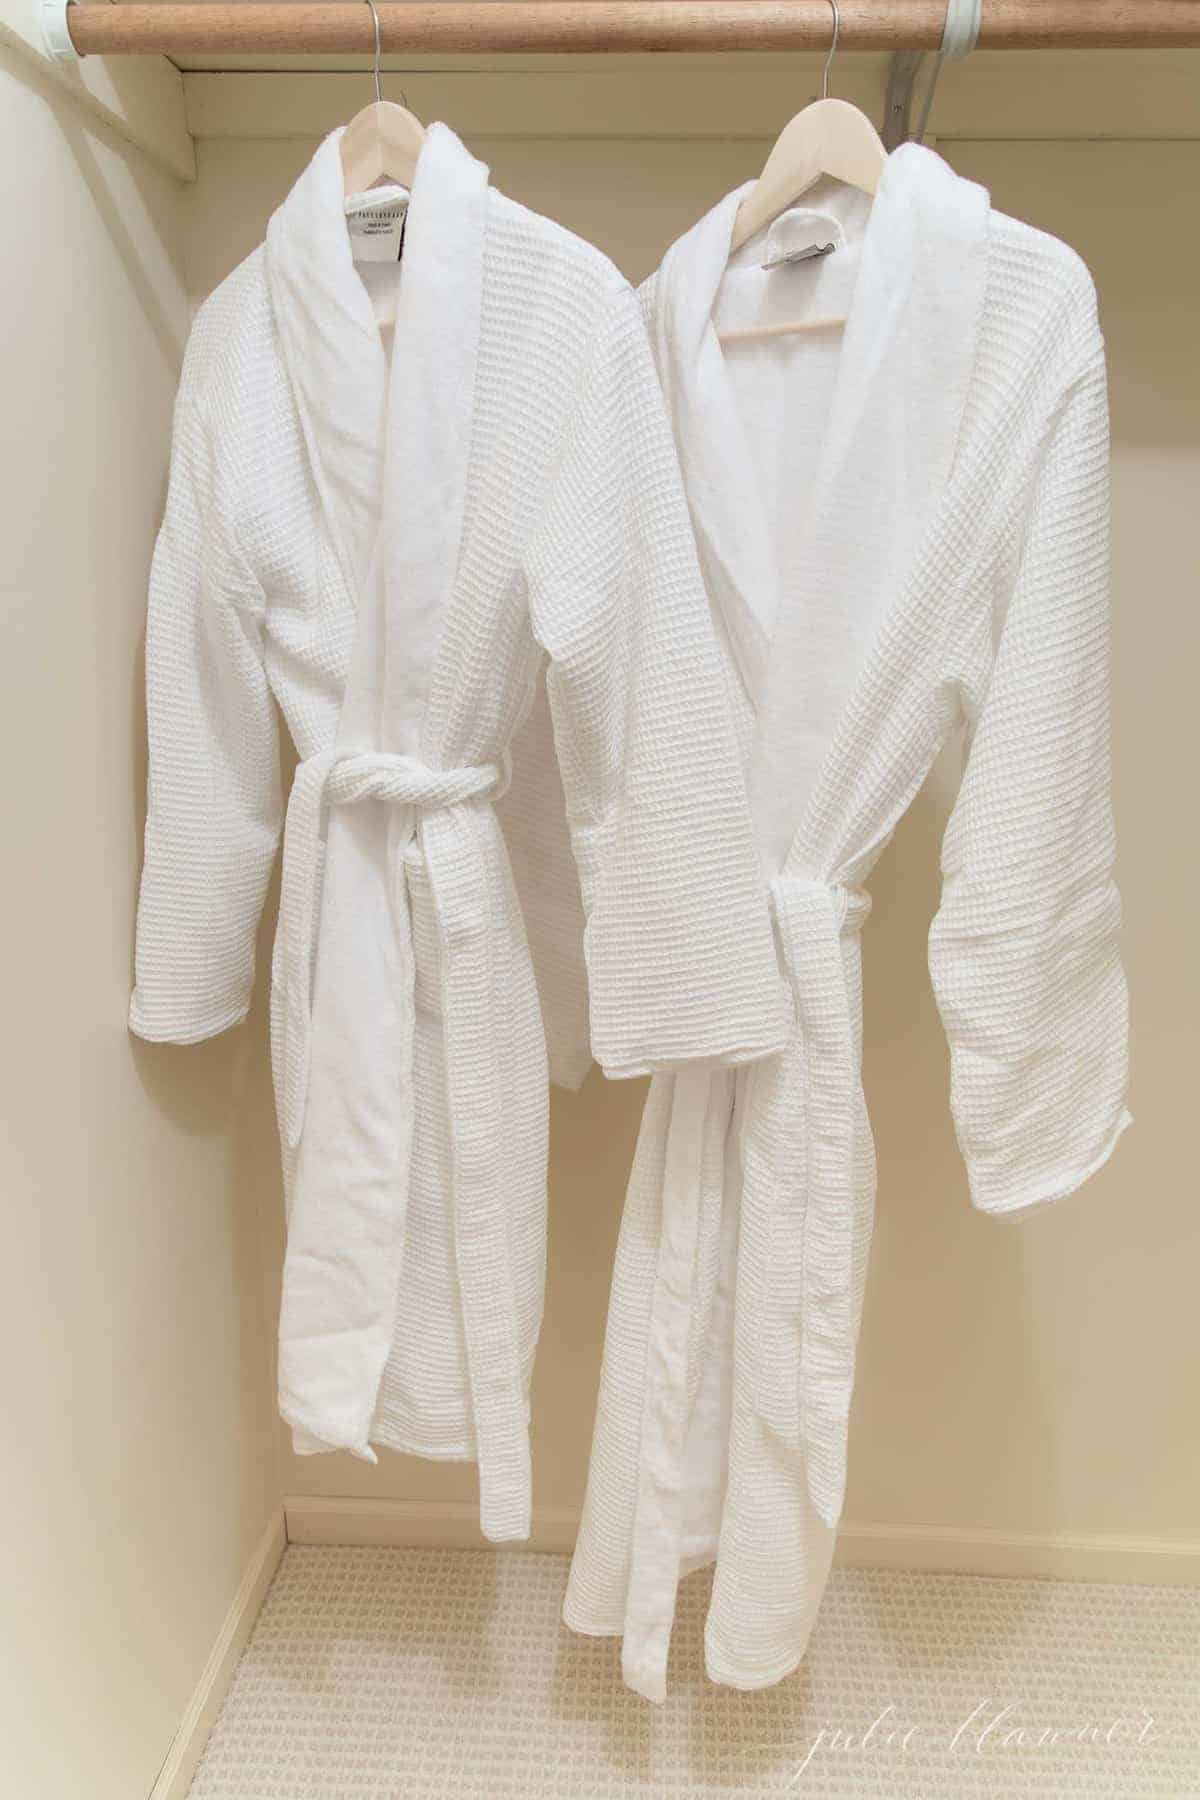 Two white bath robes hanging in a guest room closet.